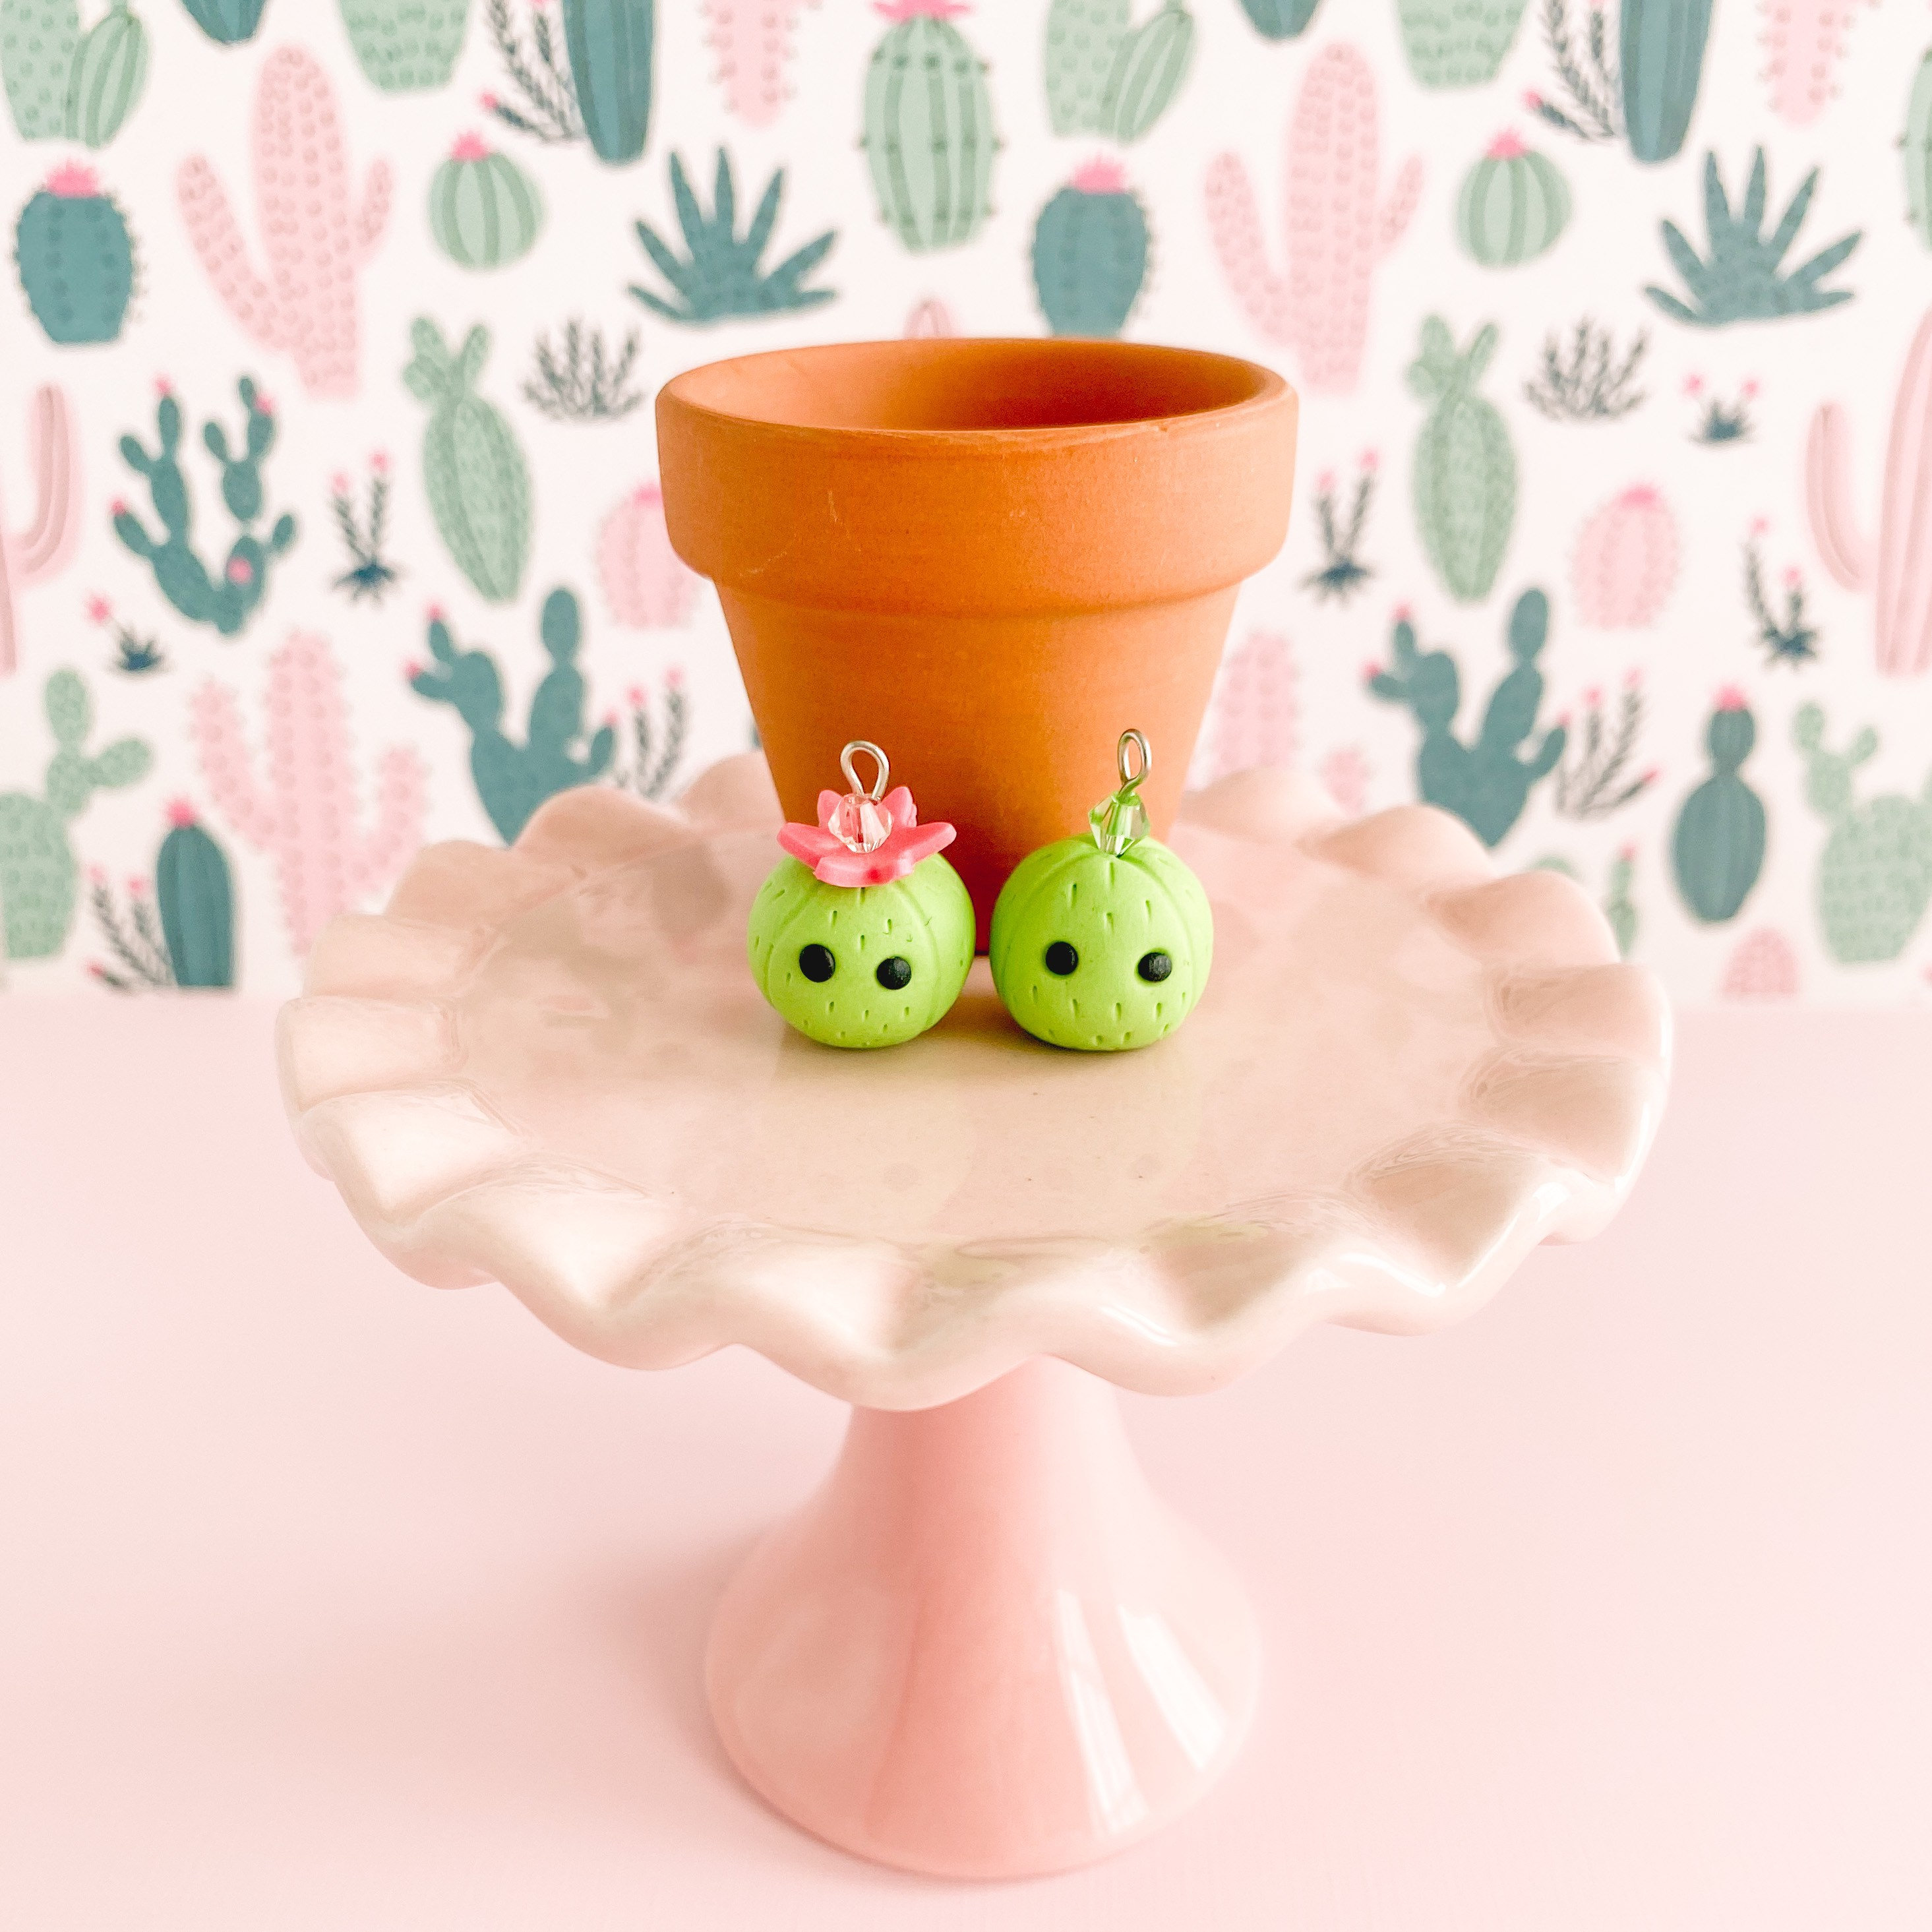 fireflyFrippery Cute Cactus Charms in front of Miniature Terra Cotta Pot on Pink Display